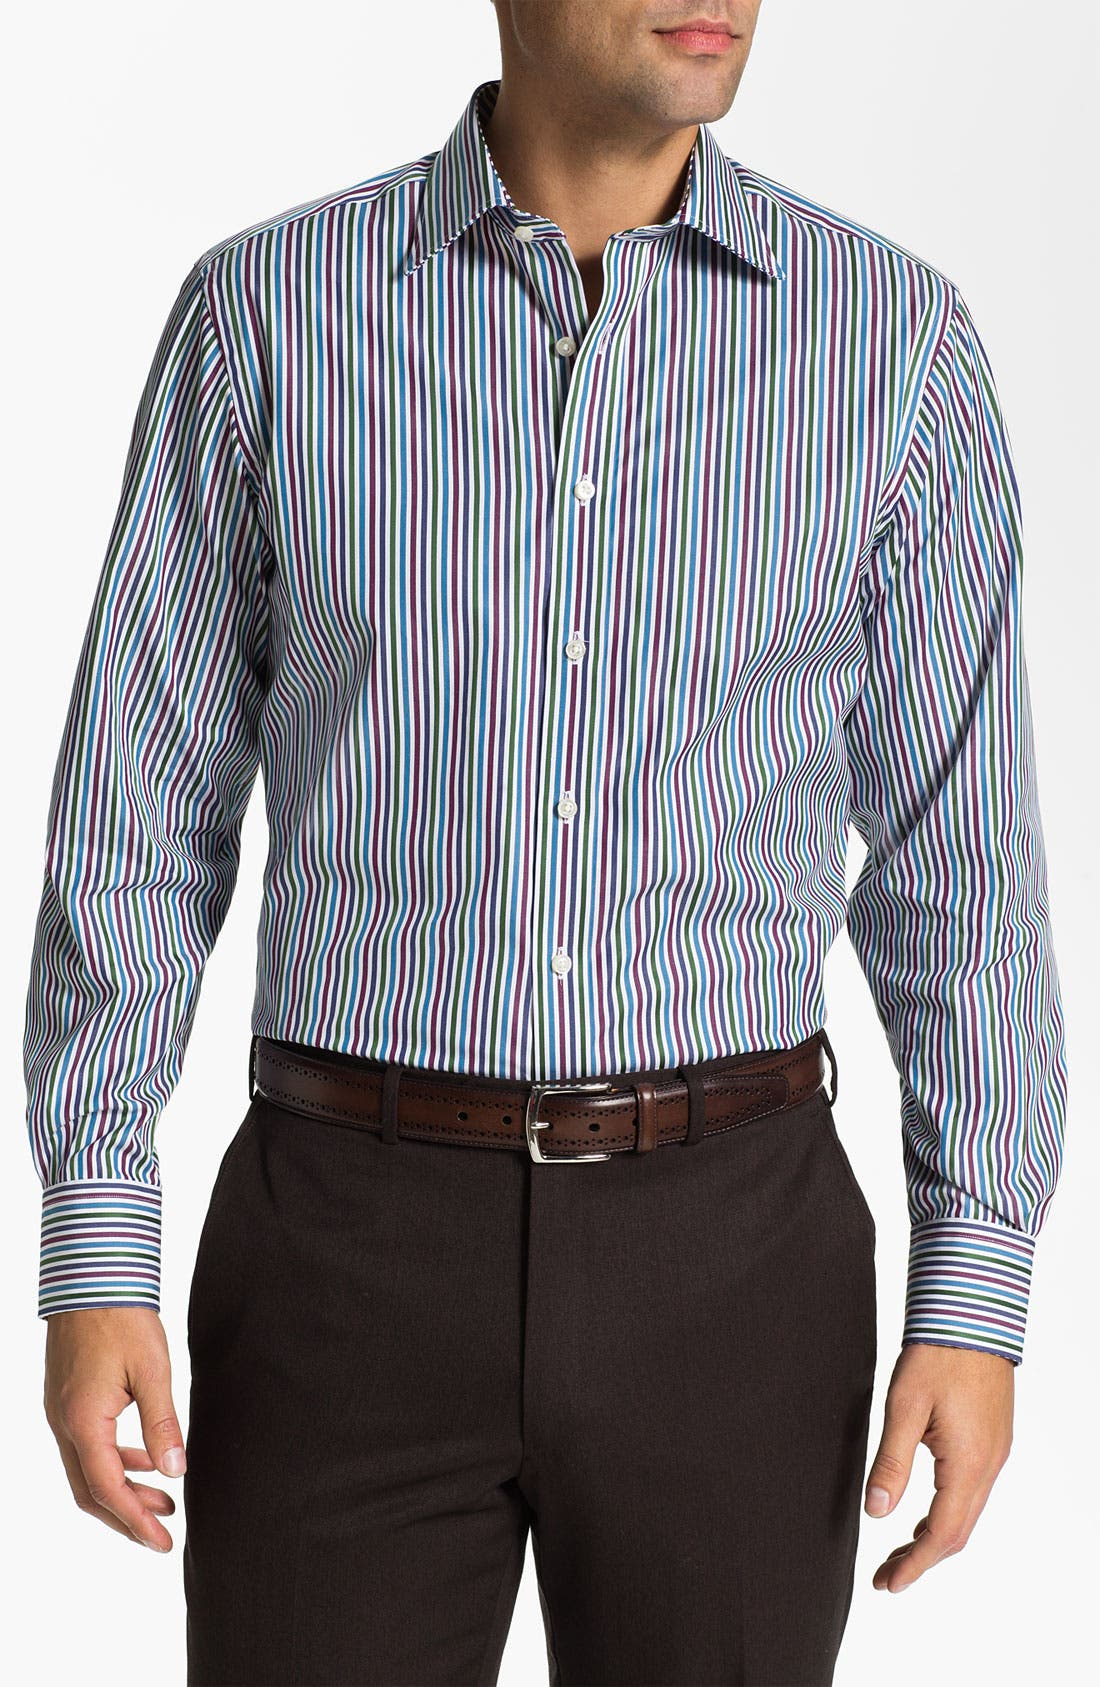 Alternate Image 1 Selected - Maker & Company Regular Fit Sport Shirt (Online Exclusive)